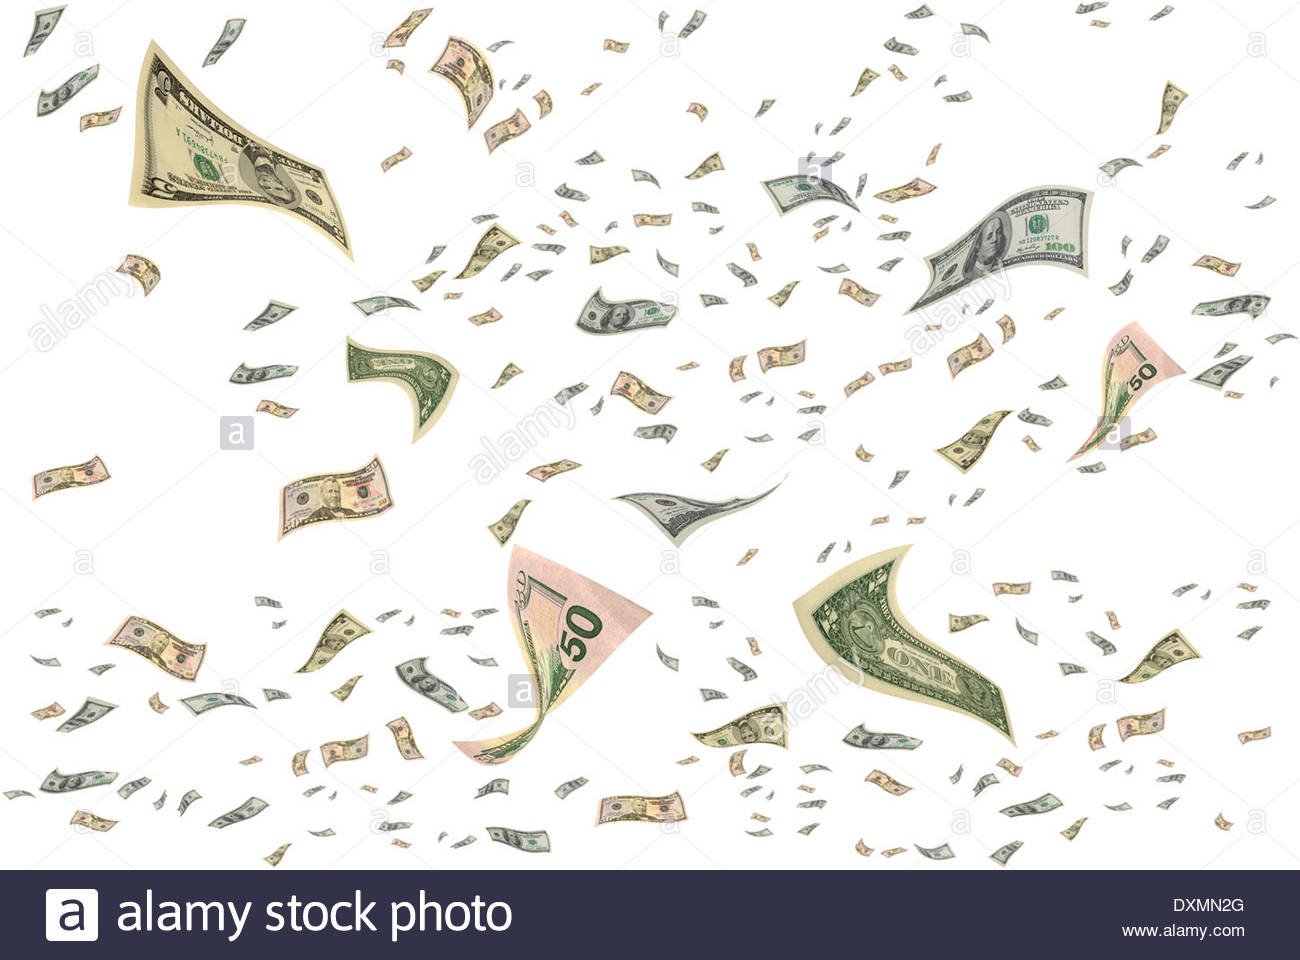 Money is flying in the air. - Stock Image